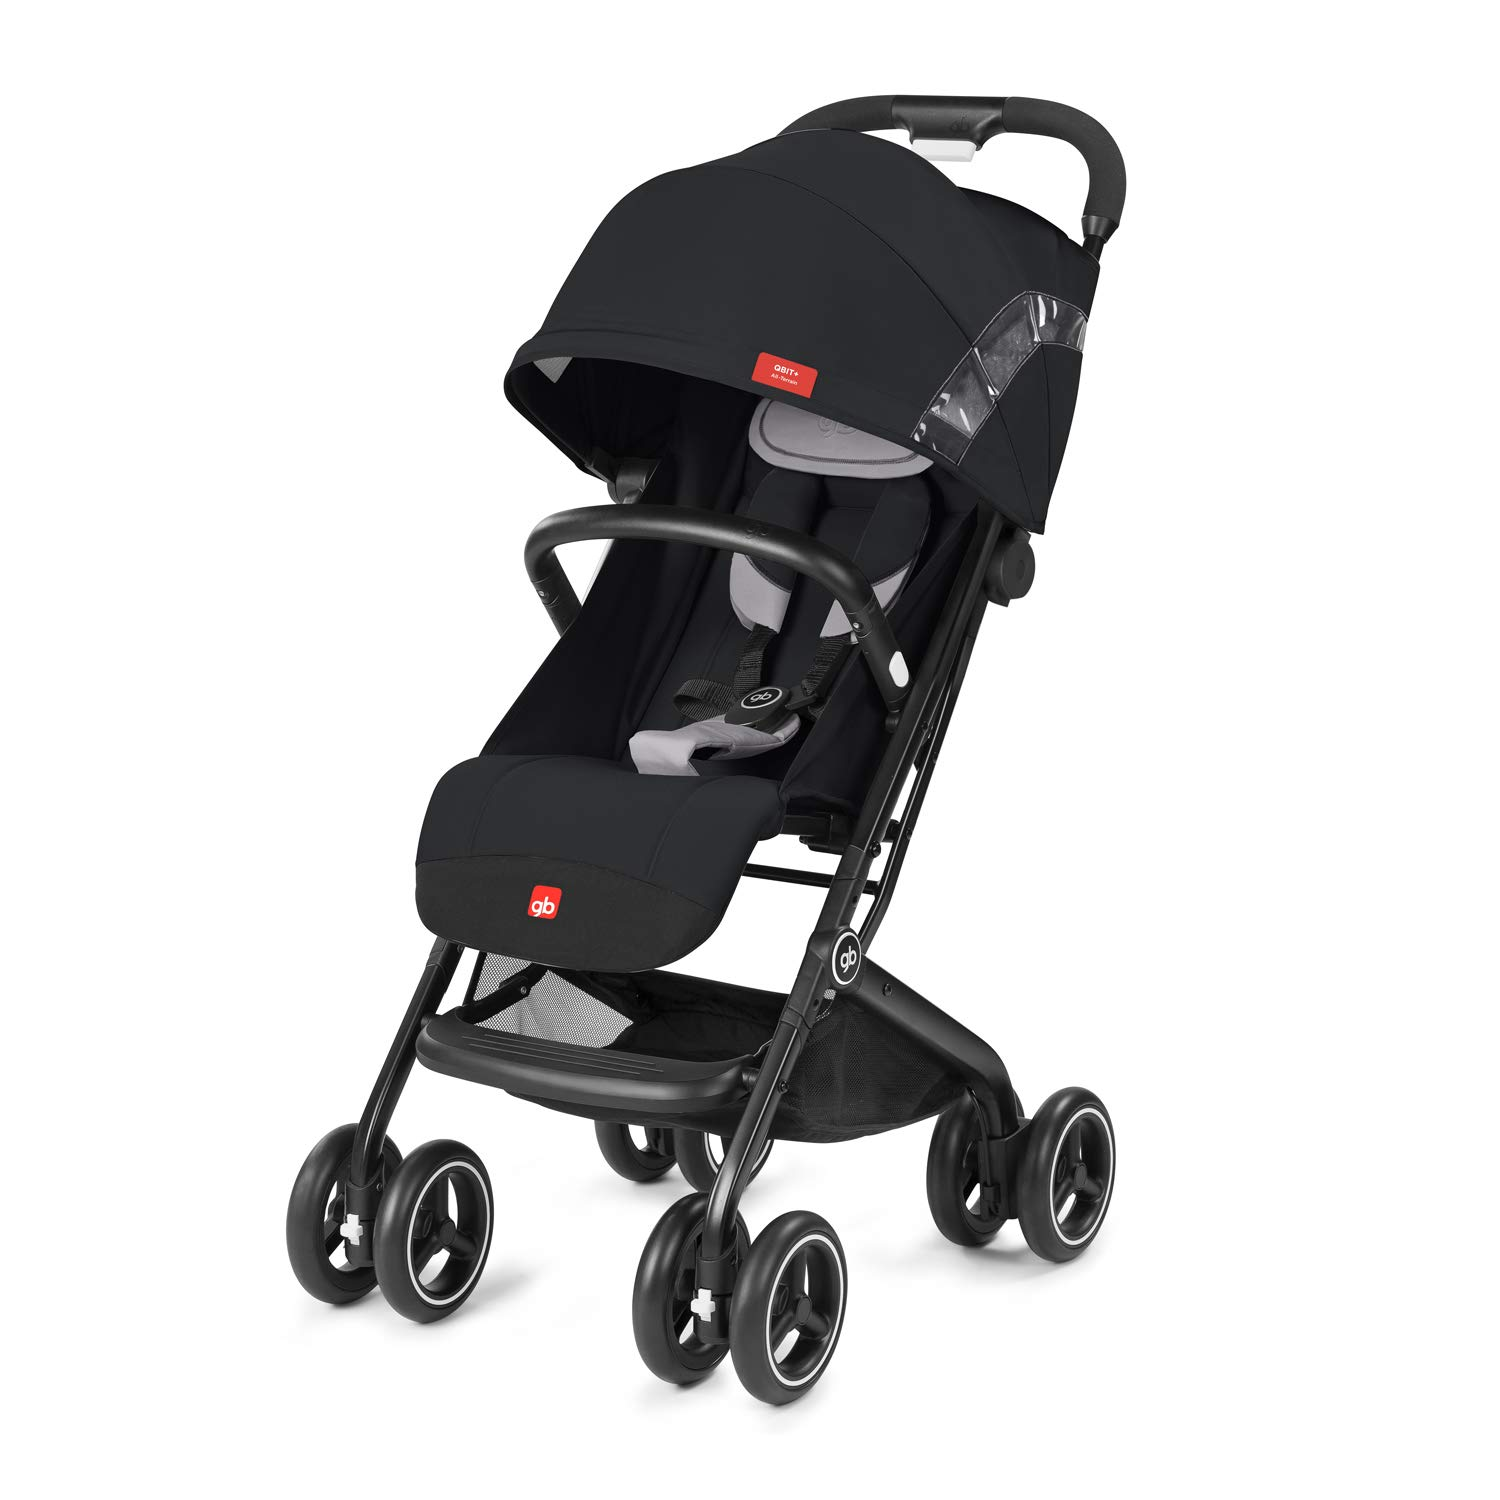 gb 2019 Buggy QBIT+ All-Terrain with Bumper Bar''Velvet Black''- from Birth up to 17 kg (Approx. 4 Years) - GoodBaby QBIT Plus